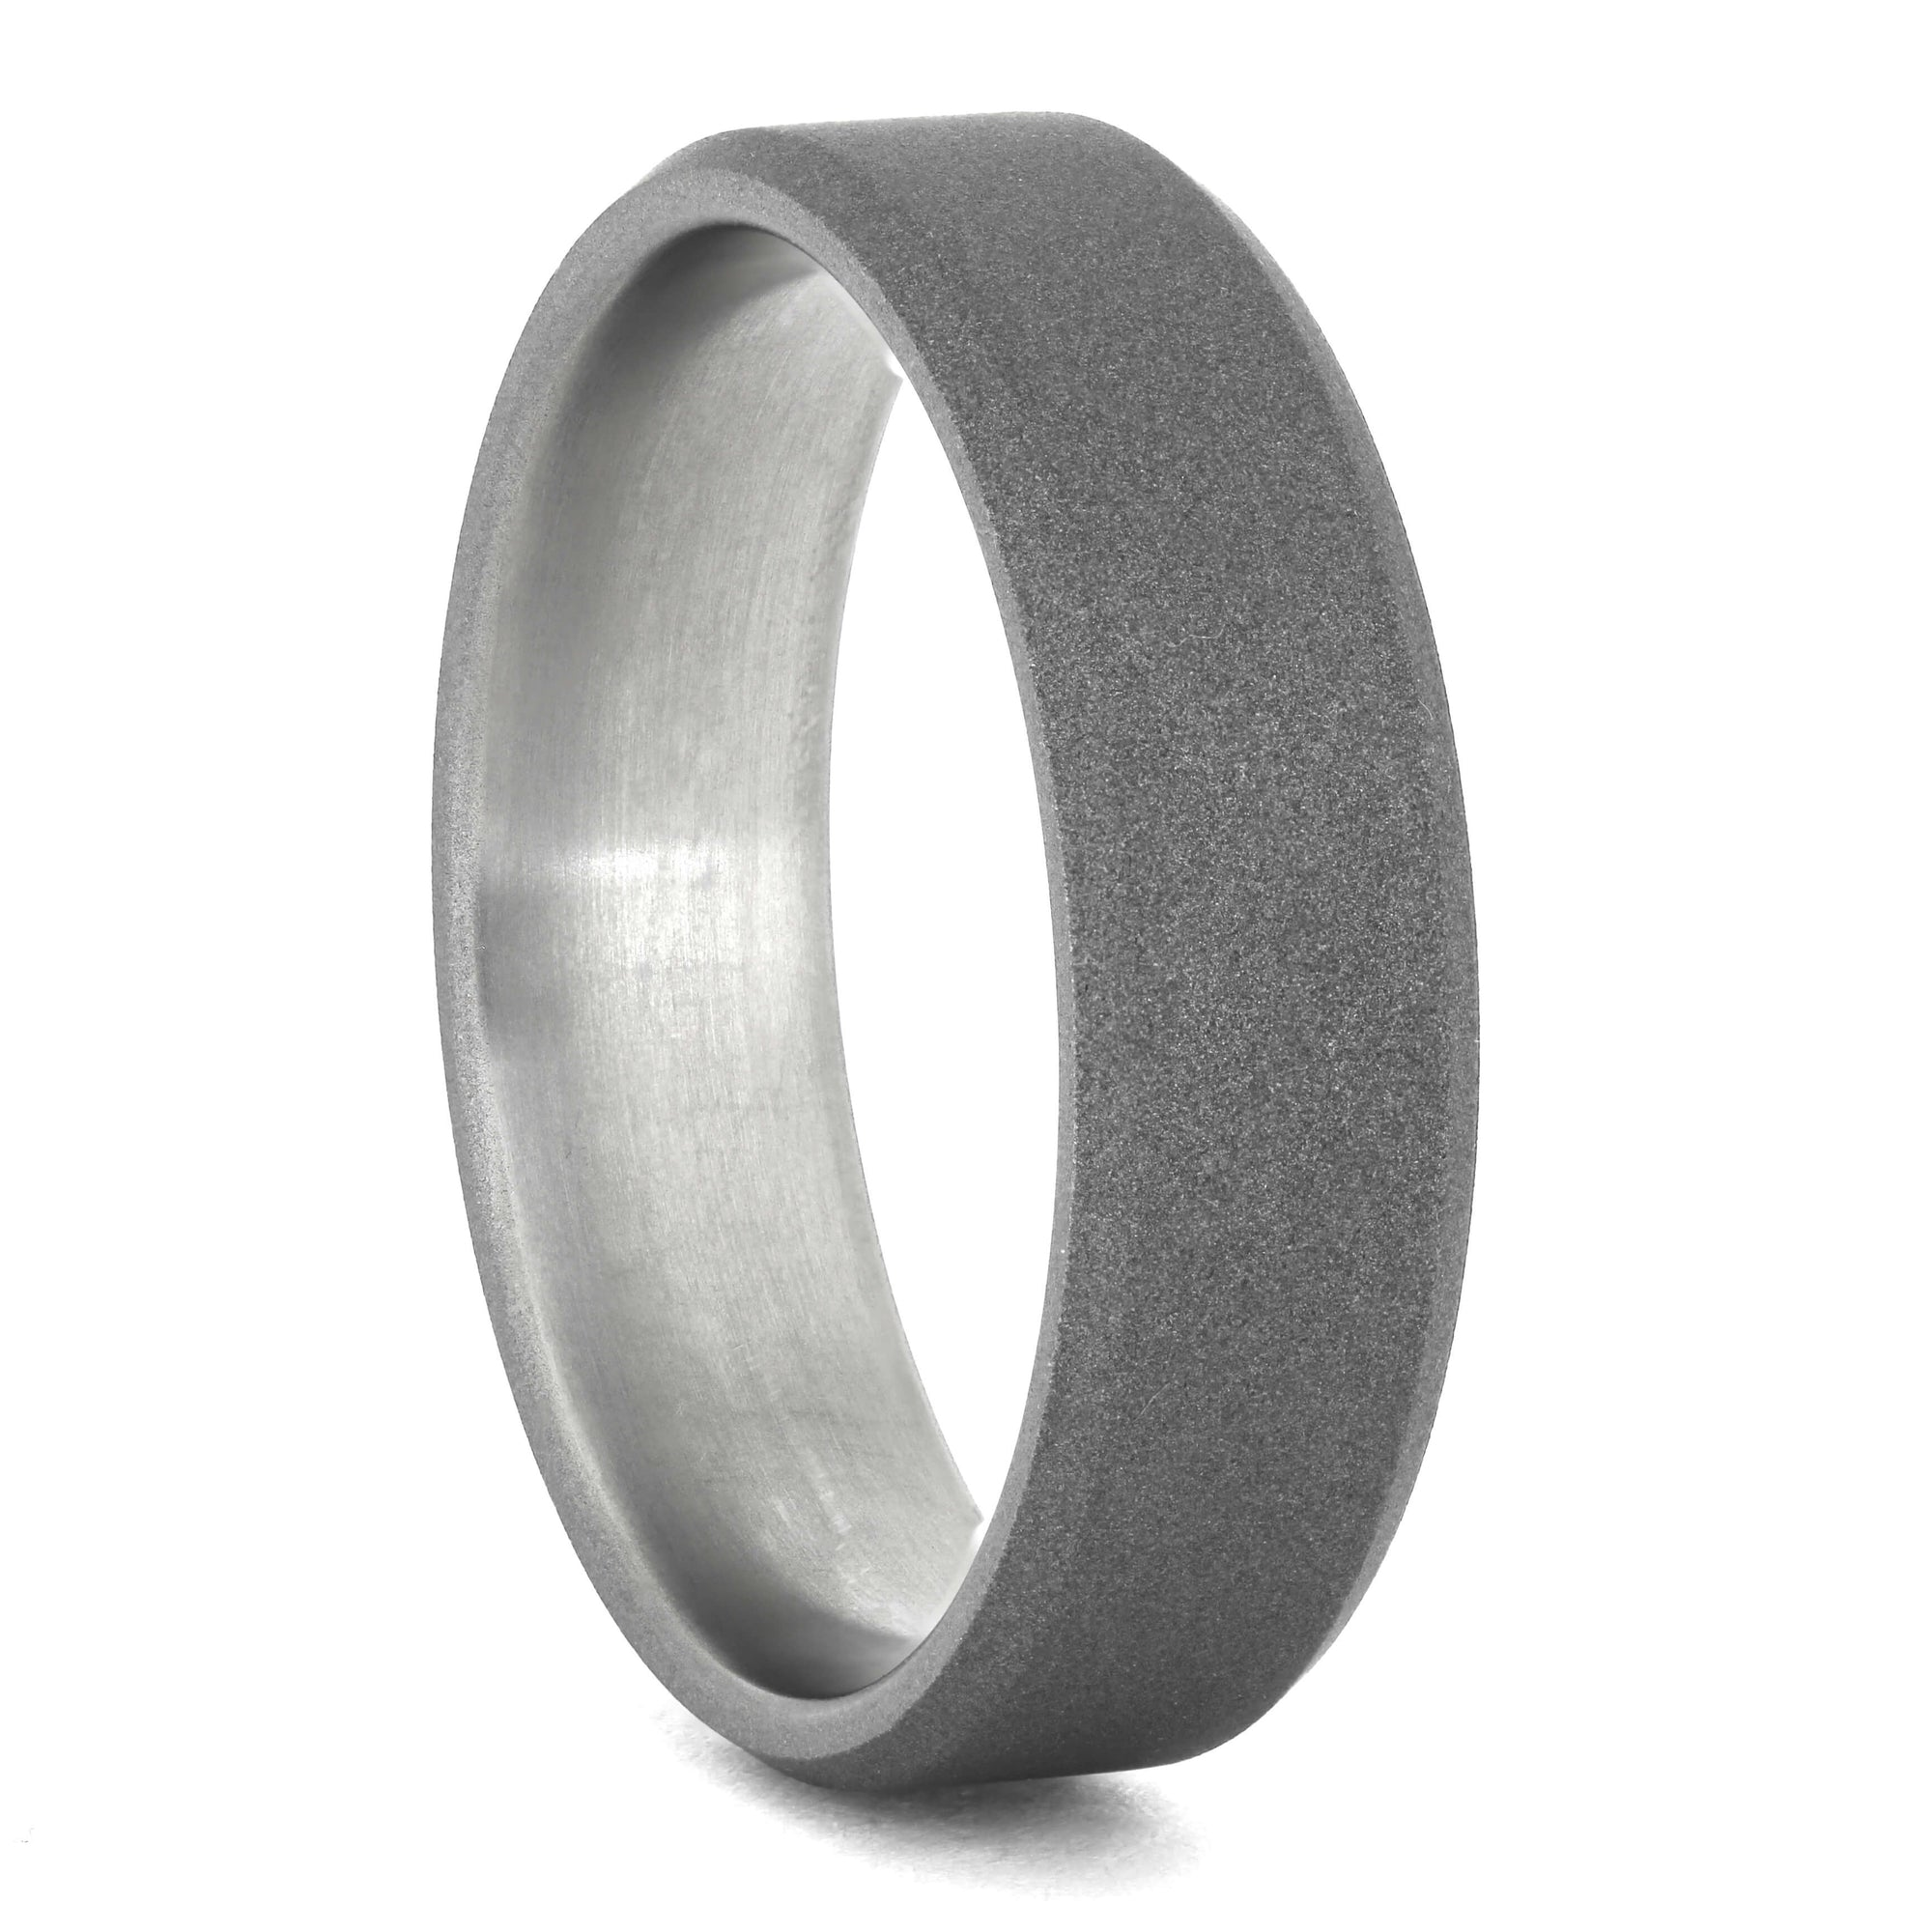 Titanium Wedding Band with Sandblasted Finish, Size 13.75-RS11030 - Jewelry by Johan